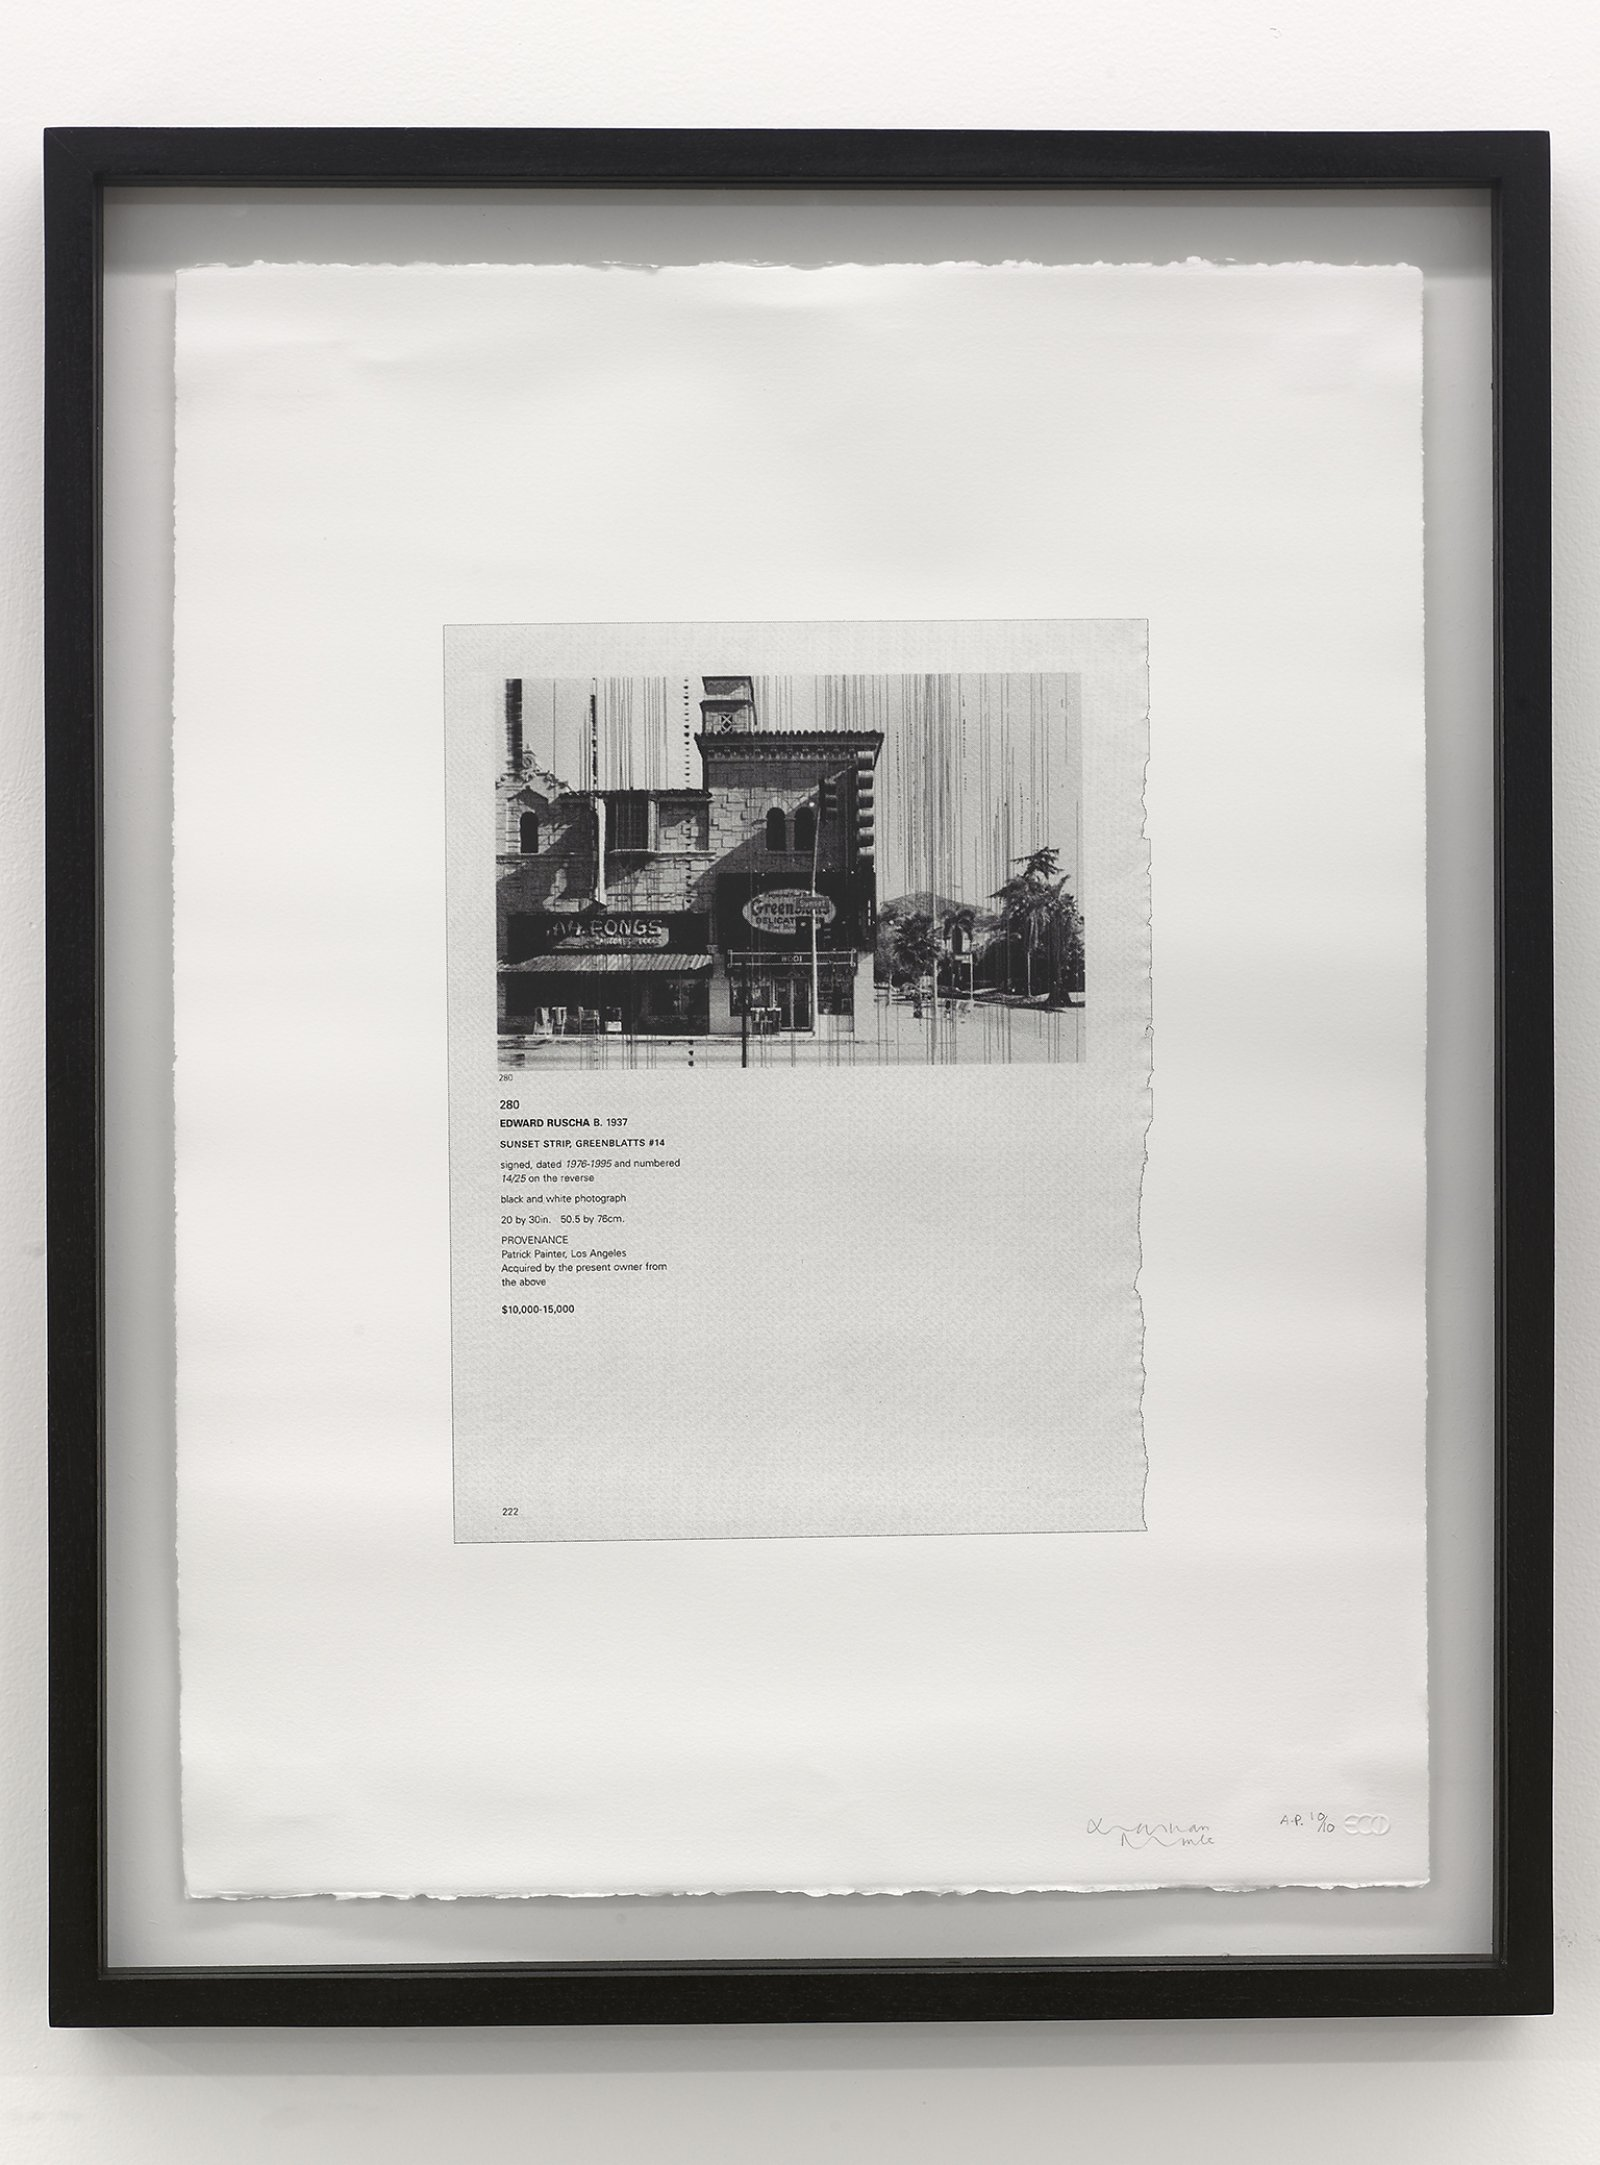 "Ron Terada, For Sale: Jonathan Monk, ""The Sun Never Really Sets"", 2007, silkscreen print on rag paper, 26(h) x 20(w) inches, A.P. 10/10, collection of Ron Terada, Vancouver, 2007, silkscreen rag on paper, 26 x 20 in. (66 x 51 cm)"